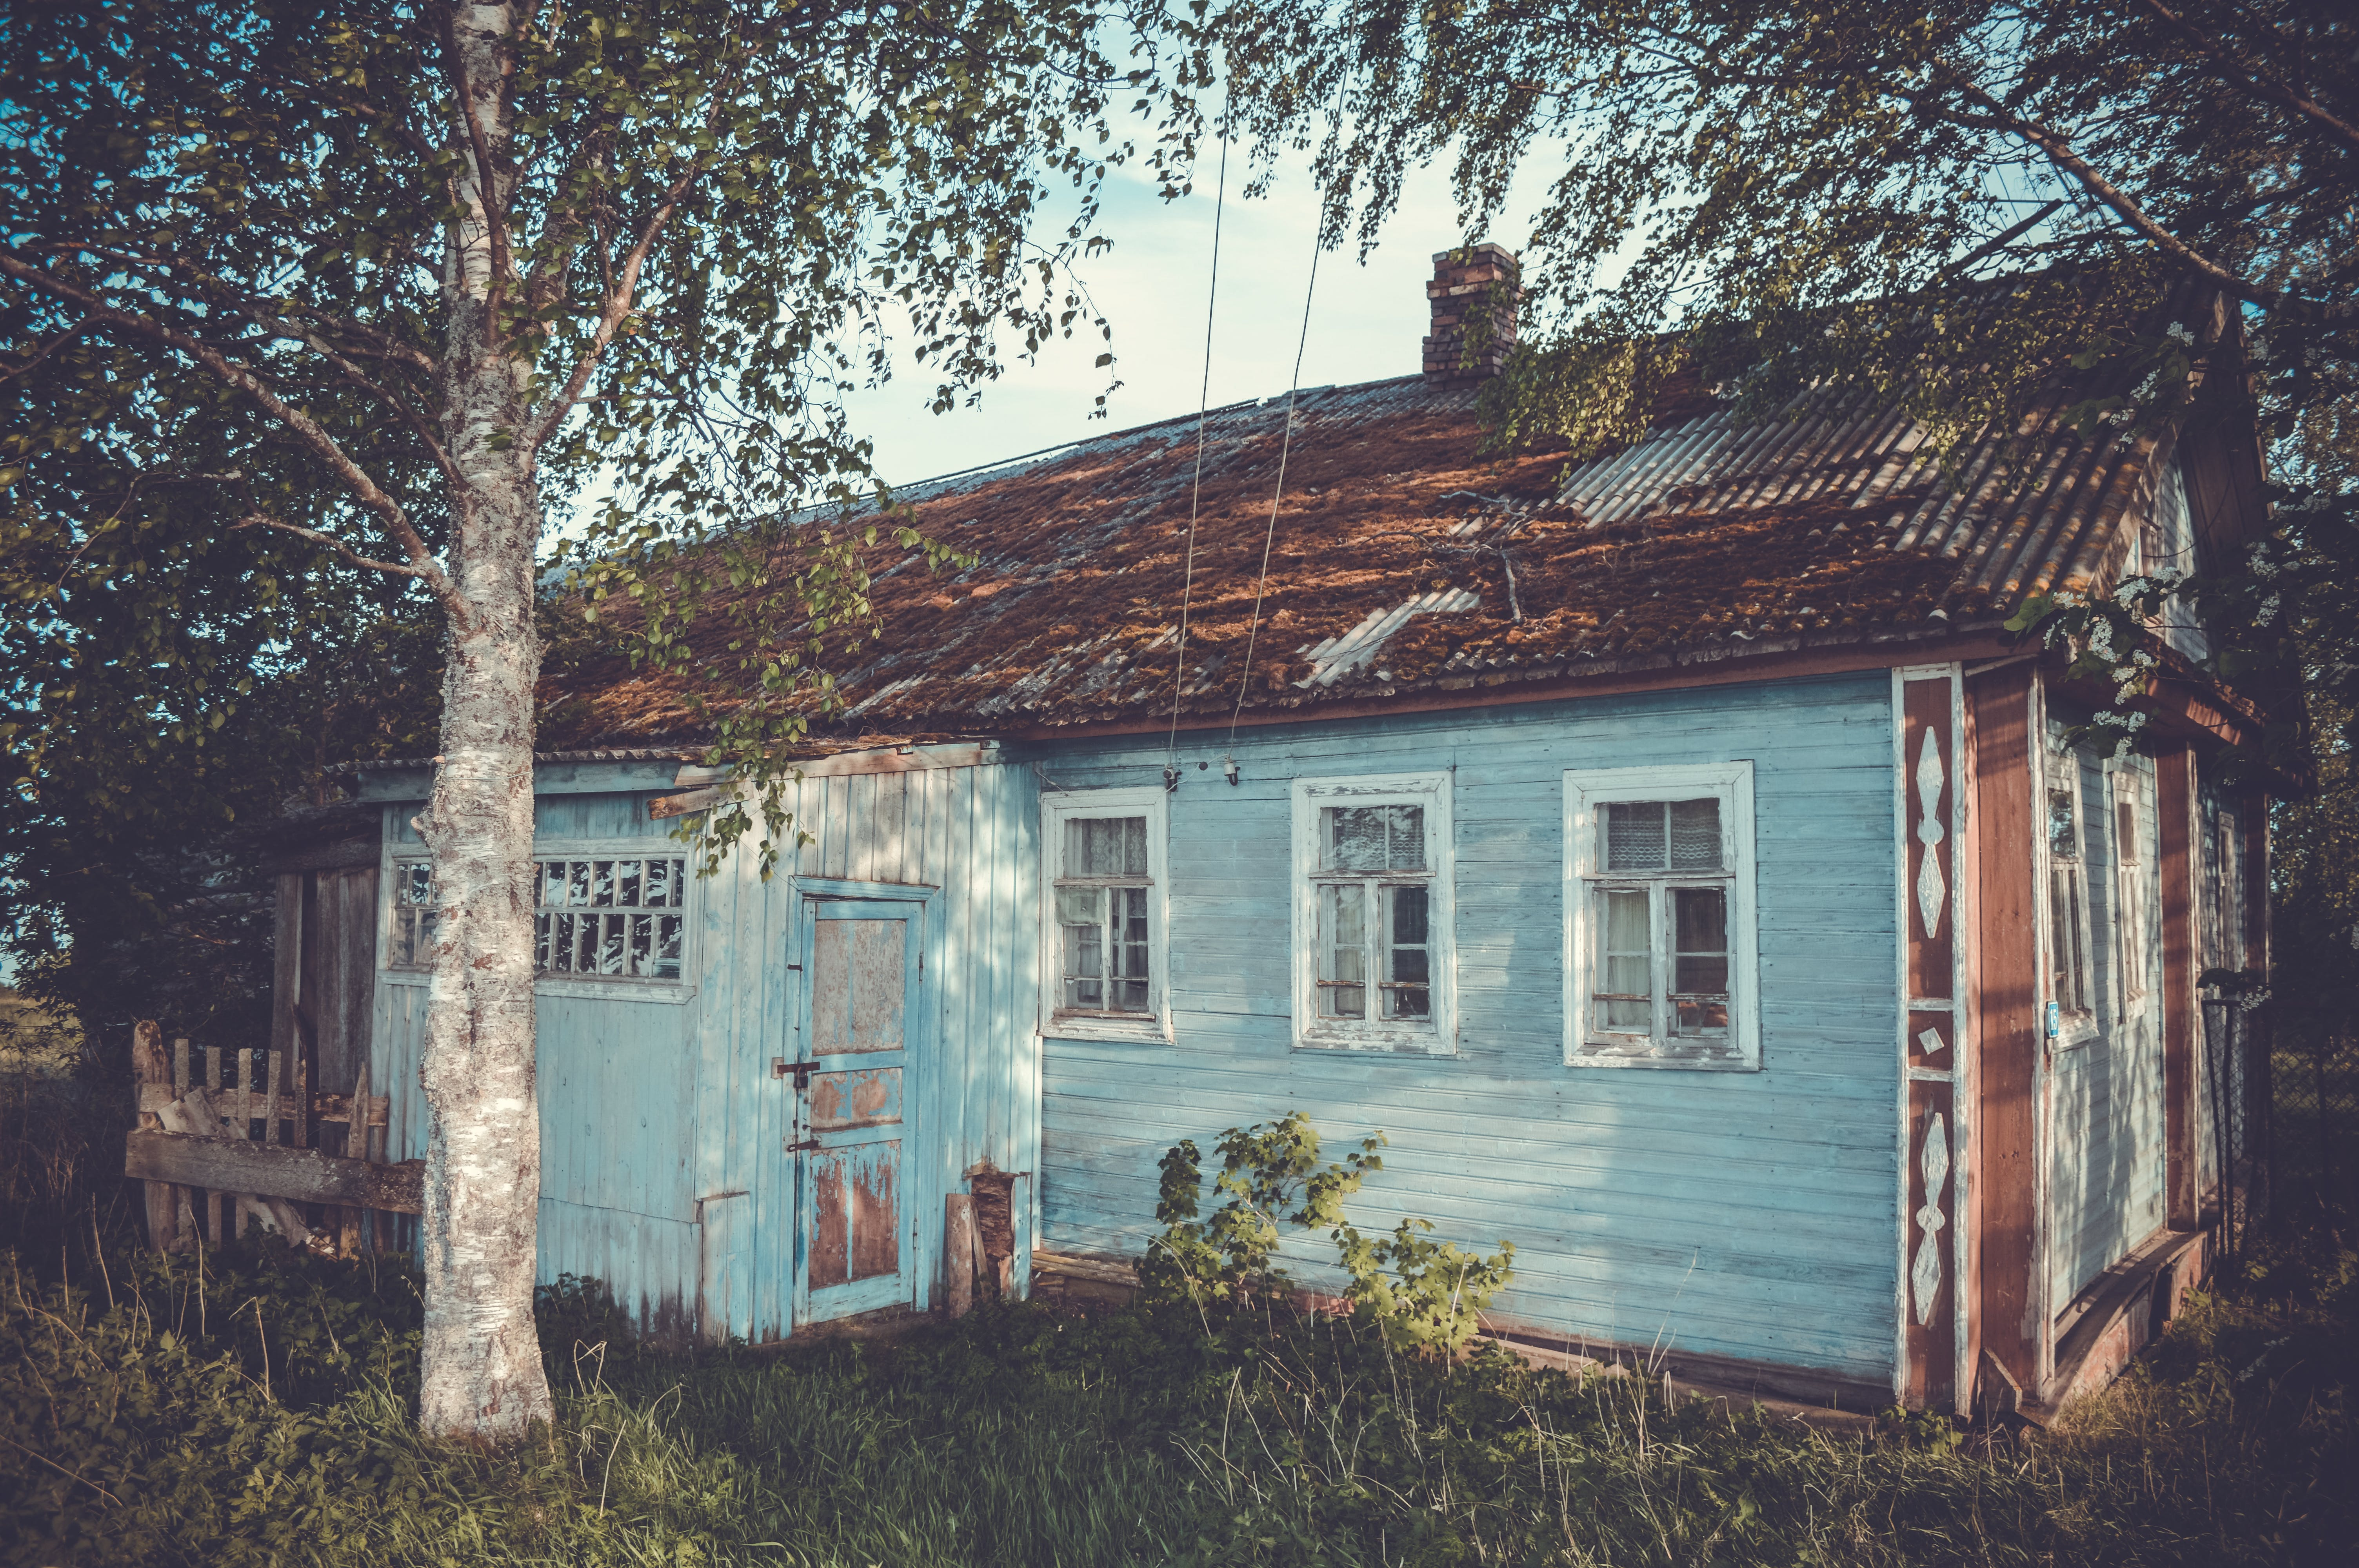 Photo of Teal Wooden Cottage Under Trees